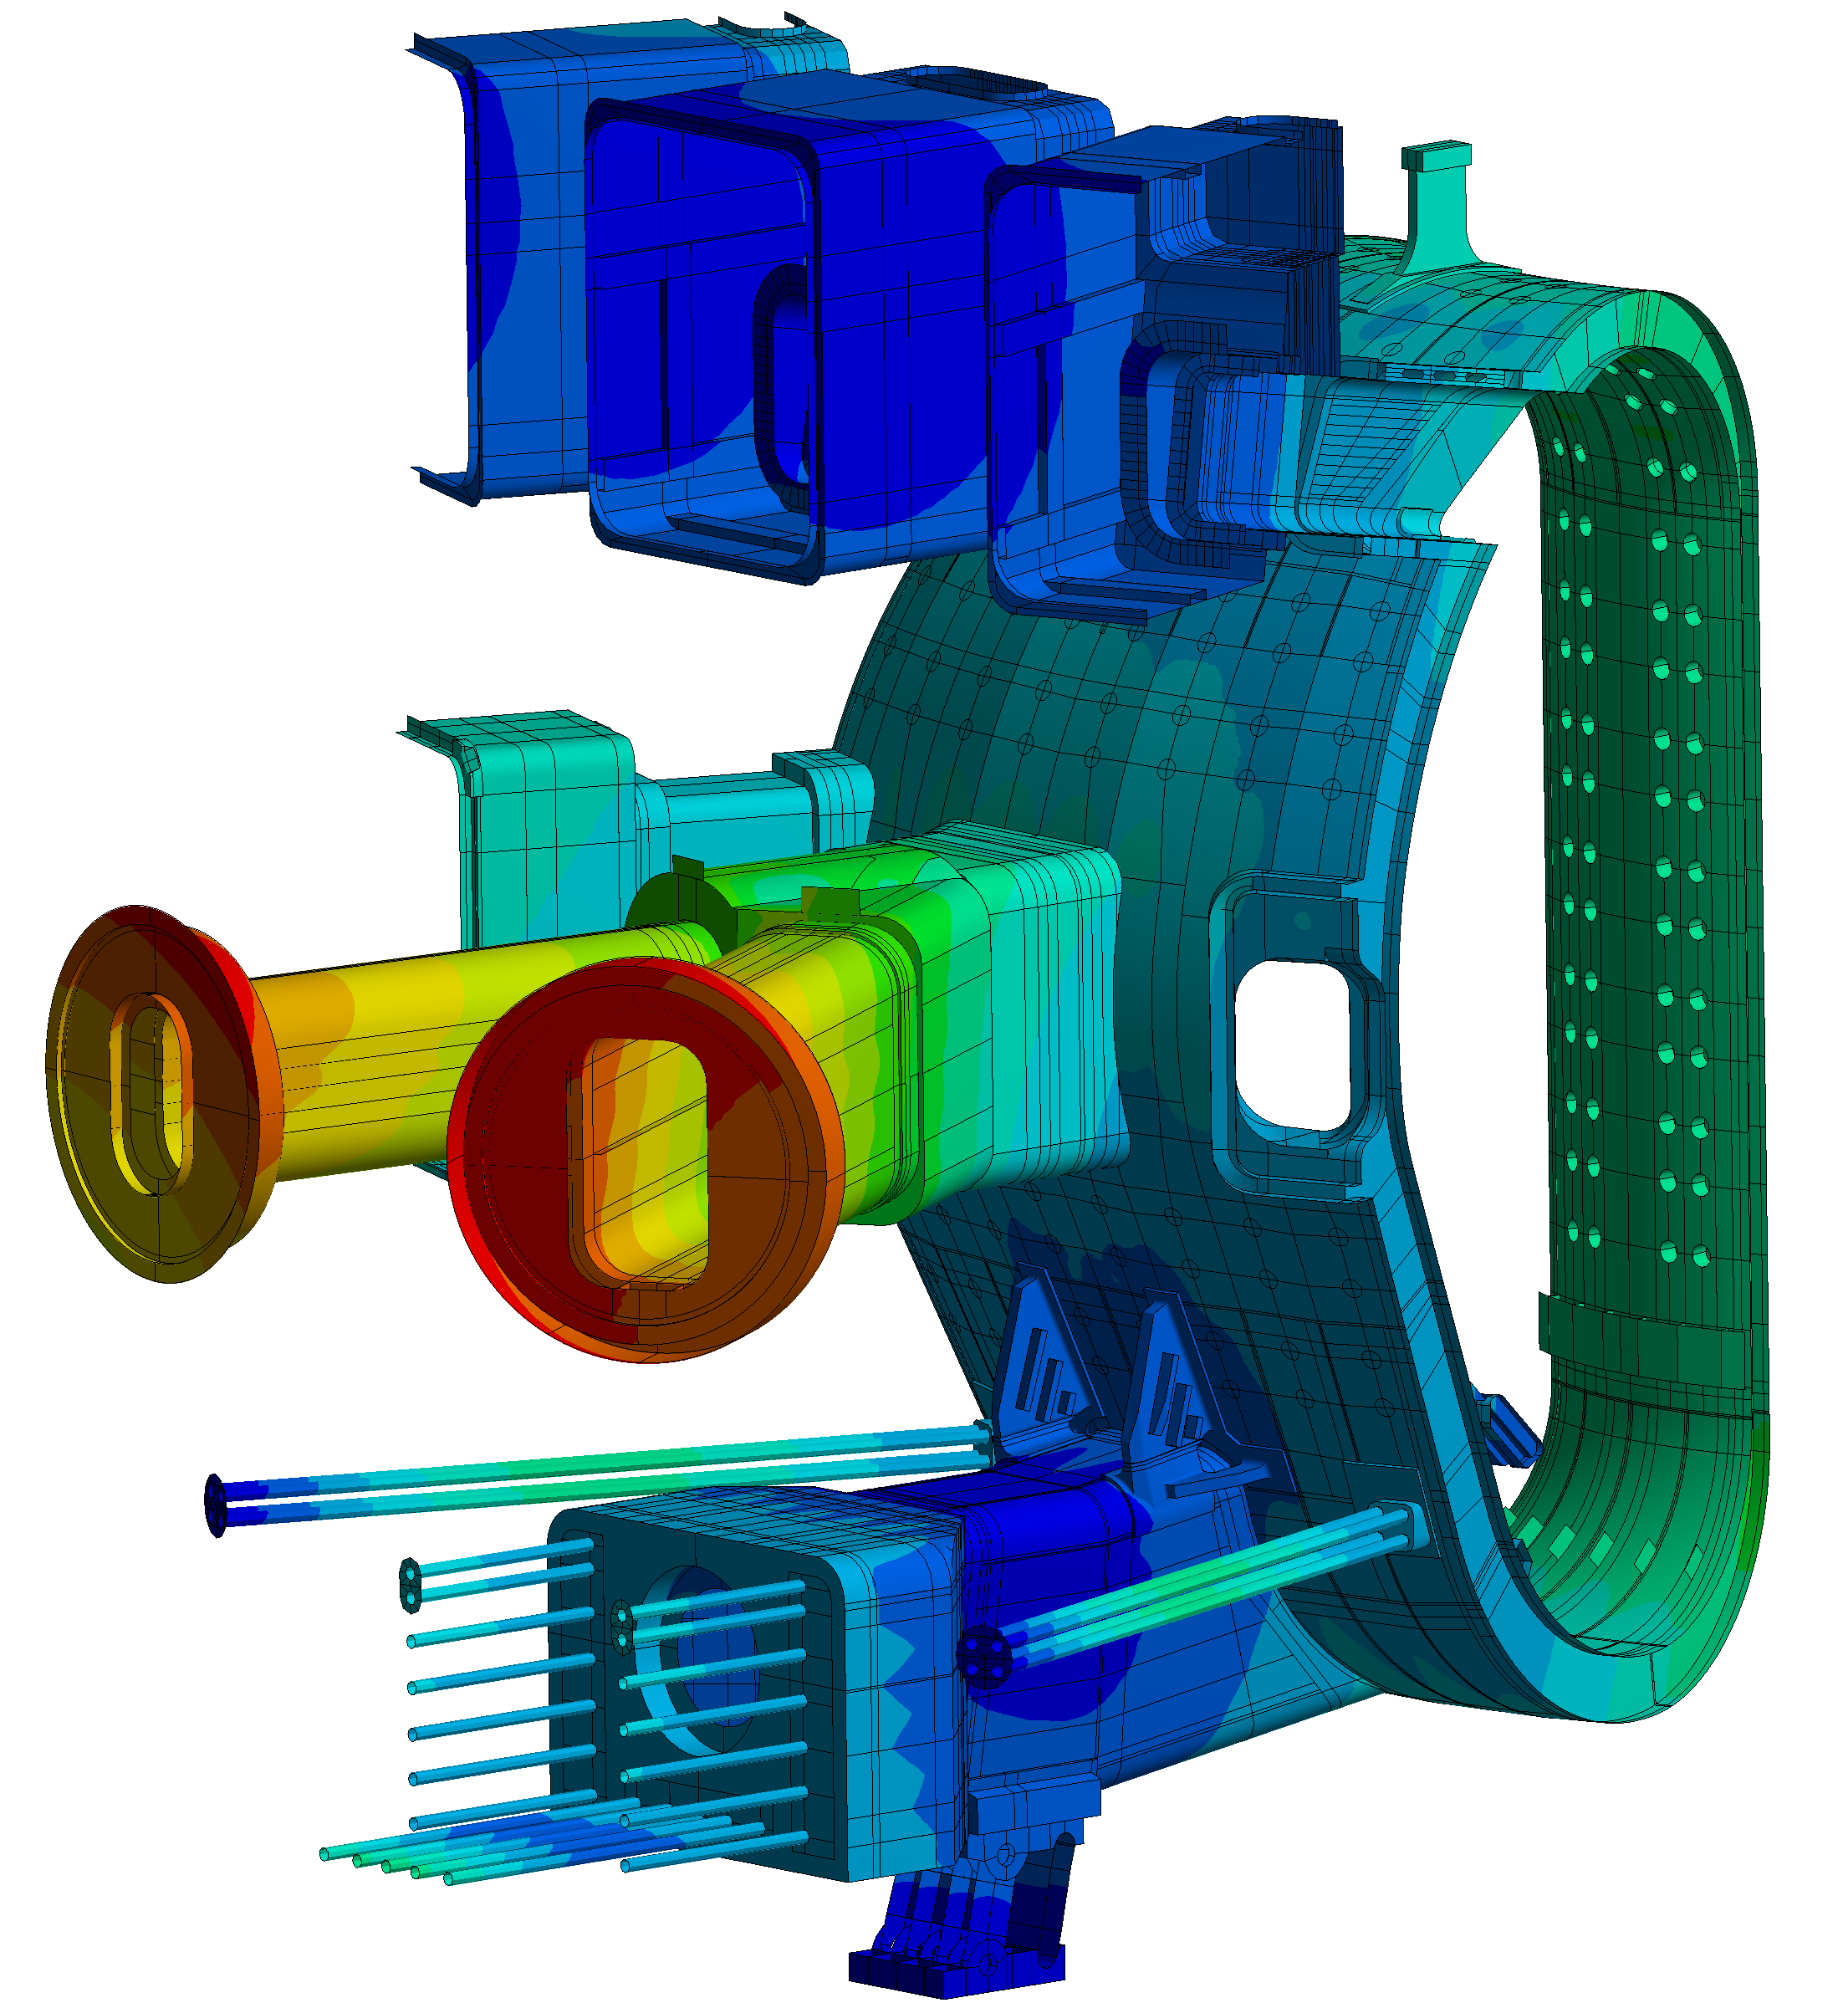 ITER, ANSYS, expertise, CEA, iteration, RJH, RCCM, CATHARE, IRSN, EDF, APRR, énergie nucléaire, bureau d'etude, simulation, dispositif, irradiation, séismologie, thermomecanique, transfer thermique, nuclear, nuclear energy, nuclear power plant, nuclear reactor, nuclear engineering, nucléaire France, nucléaire définition, nucléaire énergie fossile, nucléaire civile, nuclear fusion, nuclear acid, nuclear power trio, engineer, engineer data, engineer electrical, engineer jobs, engineer design process, engineer tf2, case study case study example, naval, naval ship, naval news, naval groupe, naval group cherbourg, naval groupe ollioules, naval group news, naval energies, naval craft, CFD, Open source, build, marine, industry process,